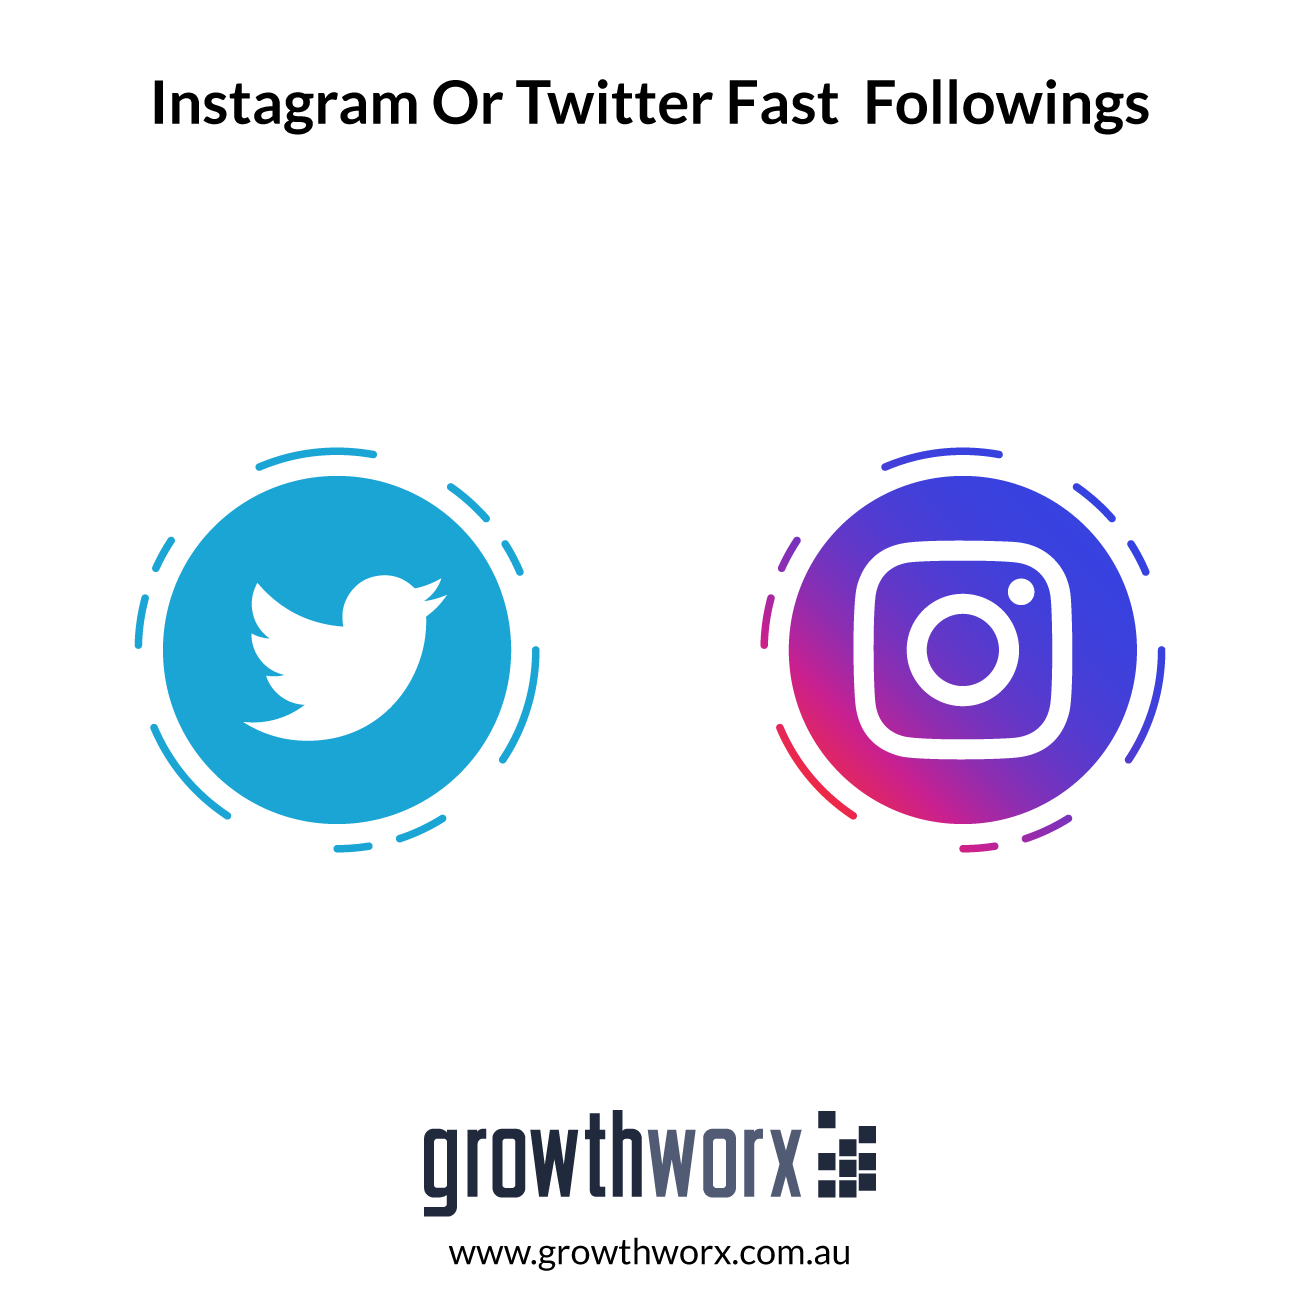 We will unfollow your instagram or twitter followings fast 1